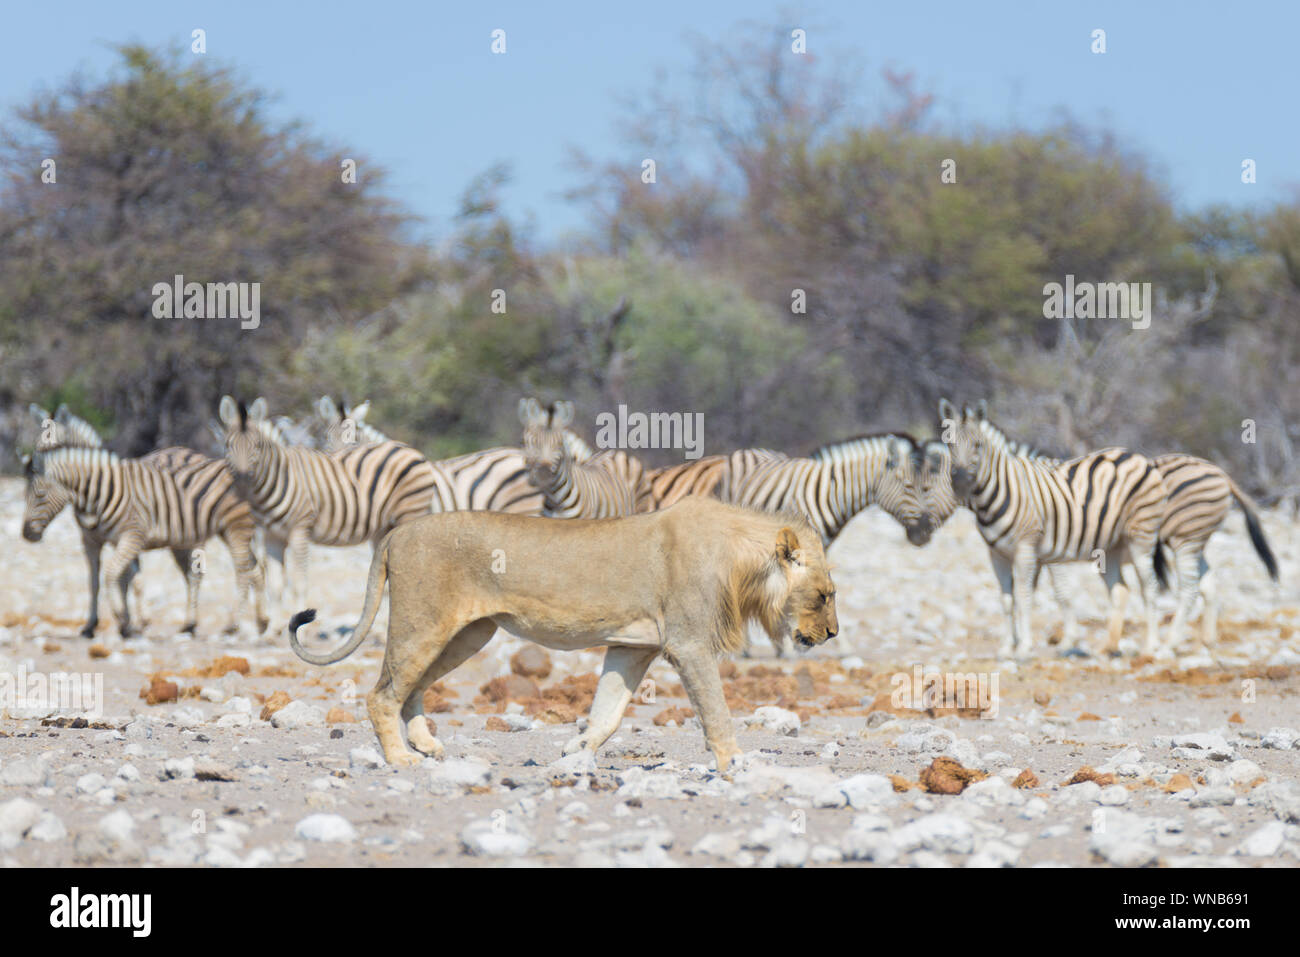 Lion and Zebras running away, defocused in the background. Wildlife safari in the Etosha National Park, Namibia, Africa. Stock Photo